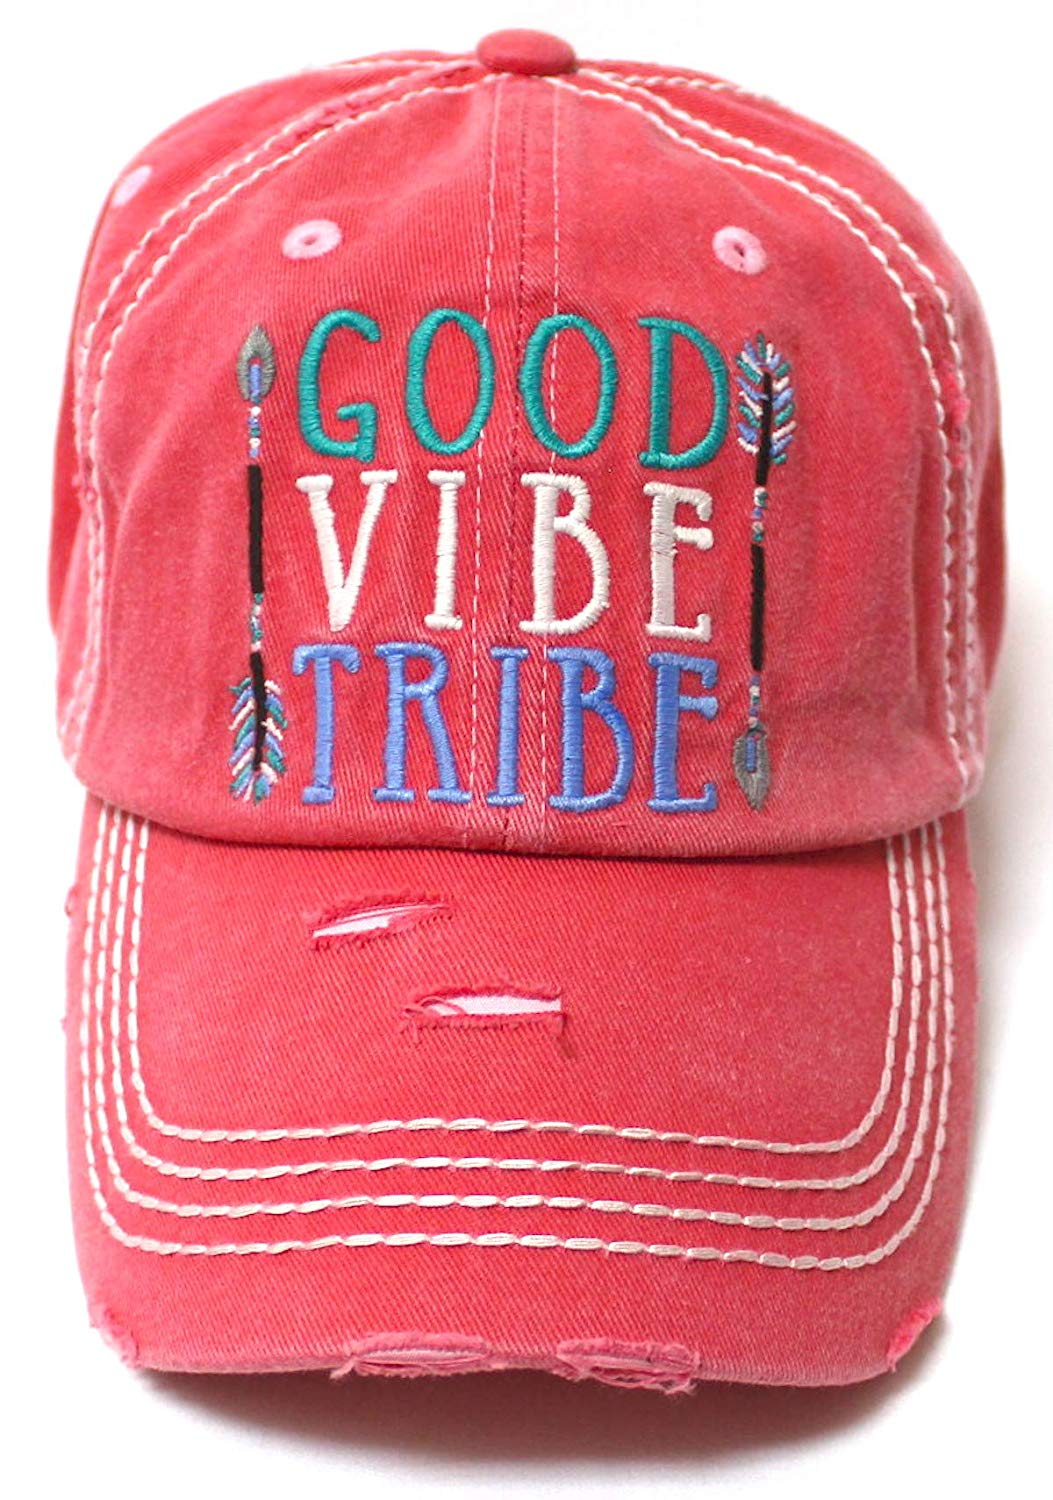 Women's Camping Cap Good Vibe Tribe Tribal Ethnic Arrow Monogram Embroidery Hat, Rose Pink - Caps 'N Vintage